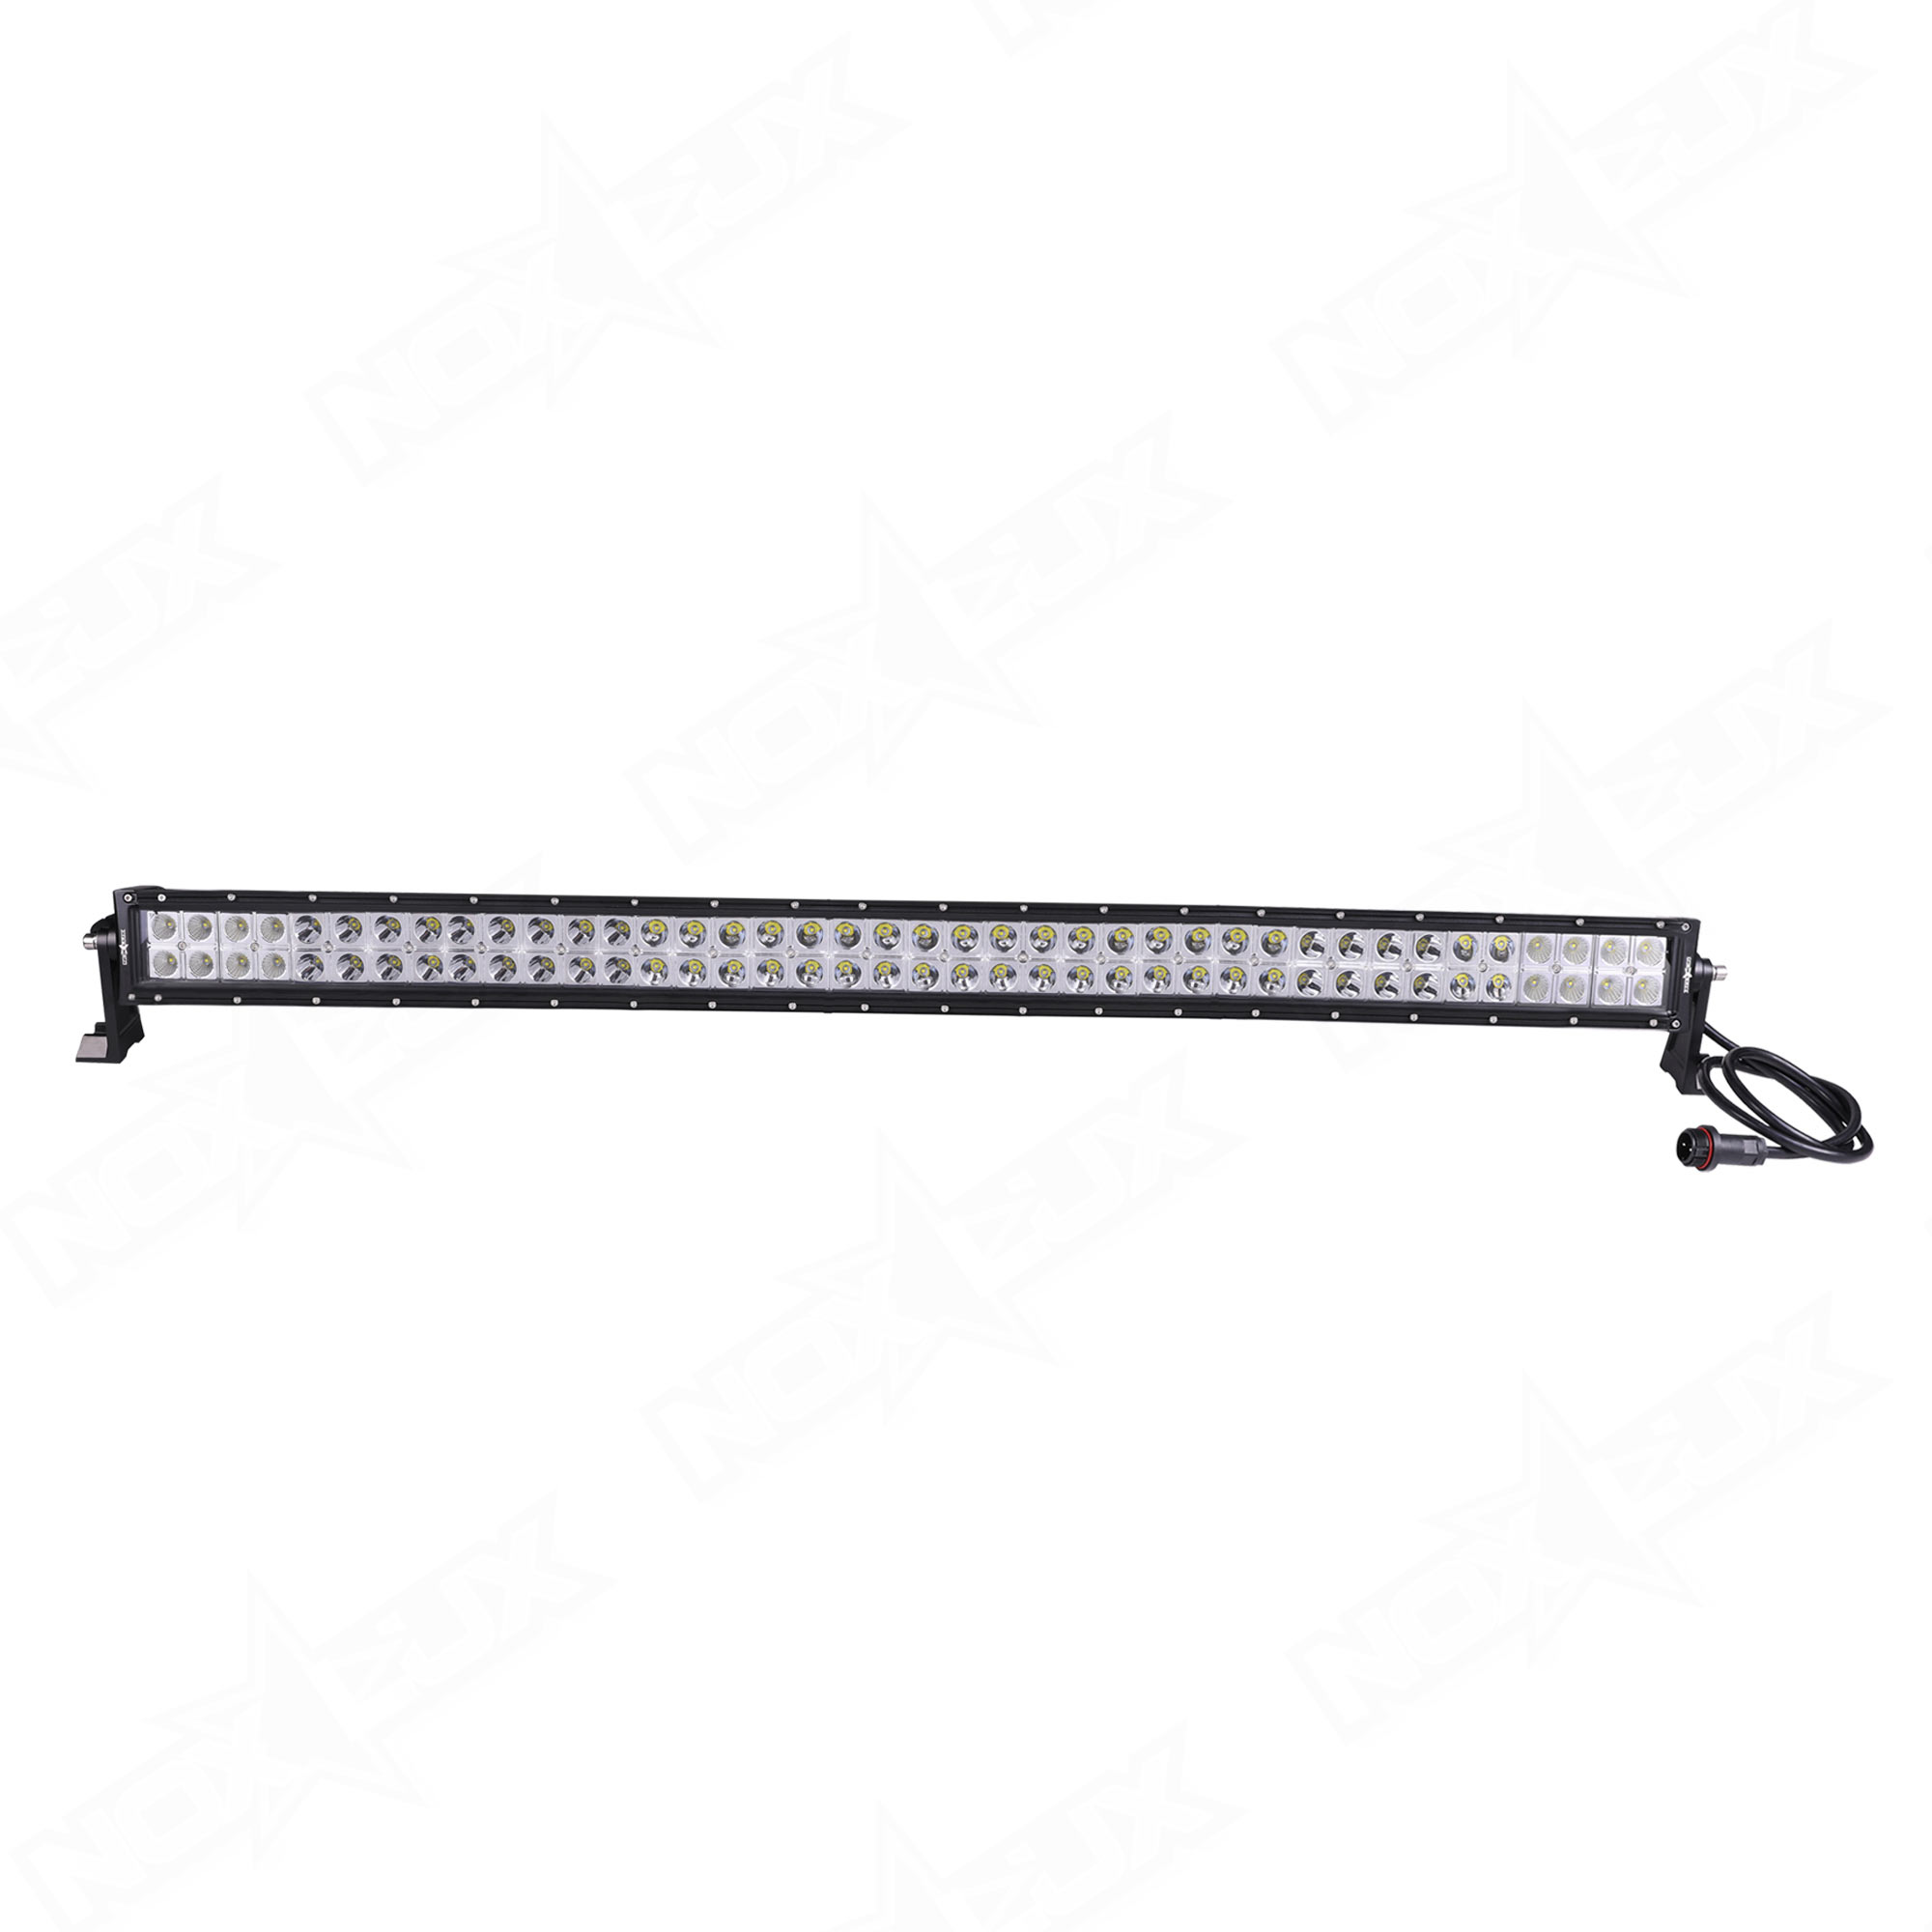 40 Inch Dual Row Light Bar Combination Beam - Nox Lux